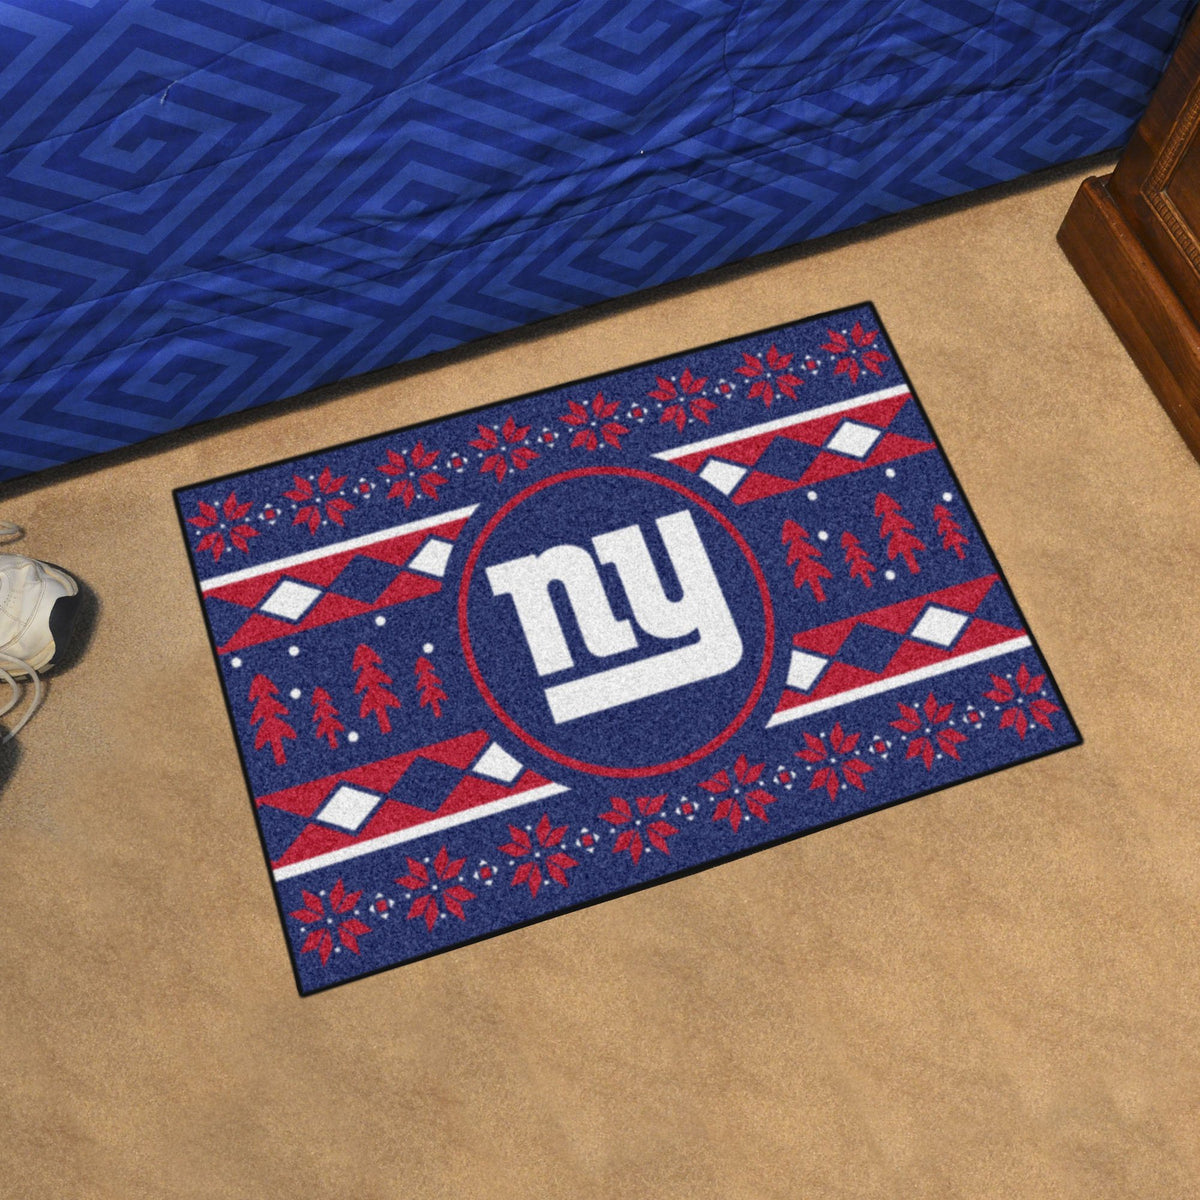 "NFL - Holiday Sweater Starter Mat, 19"" x 30"" NFL Mats, Rectangular Mats, Holiday Sweater Starter Mat, NFL, Home Fan Mats New York Giants"